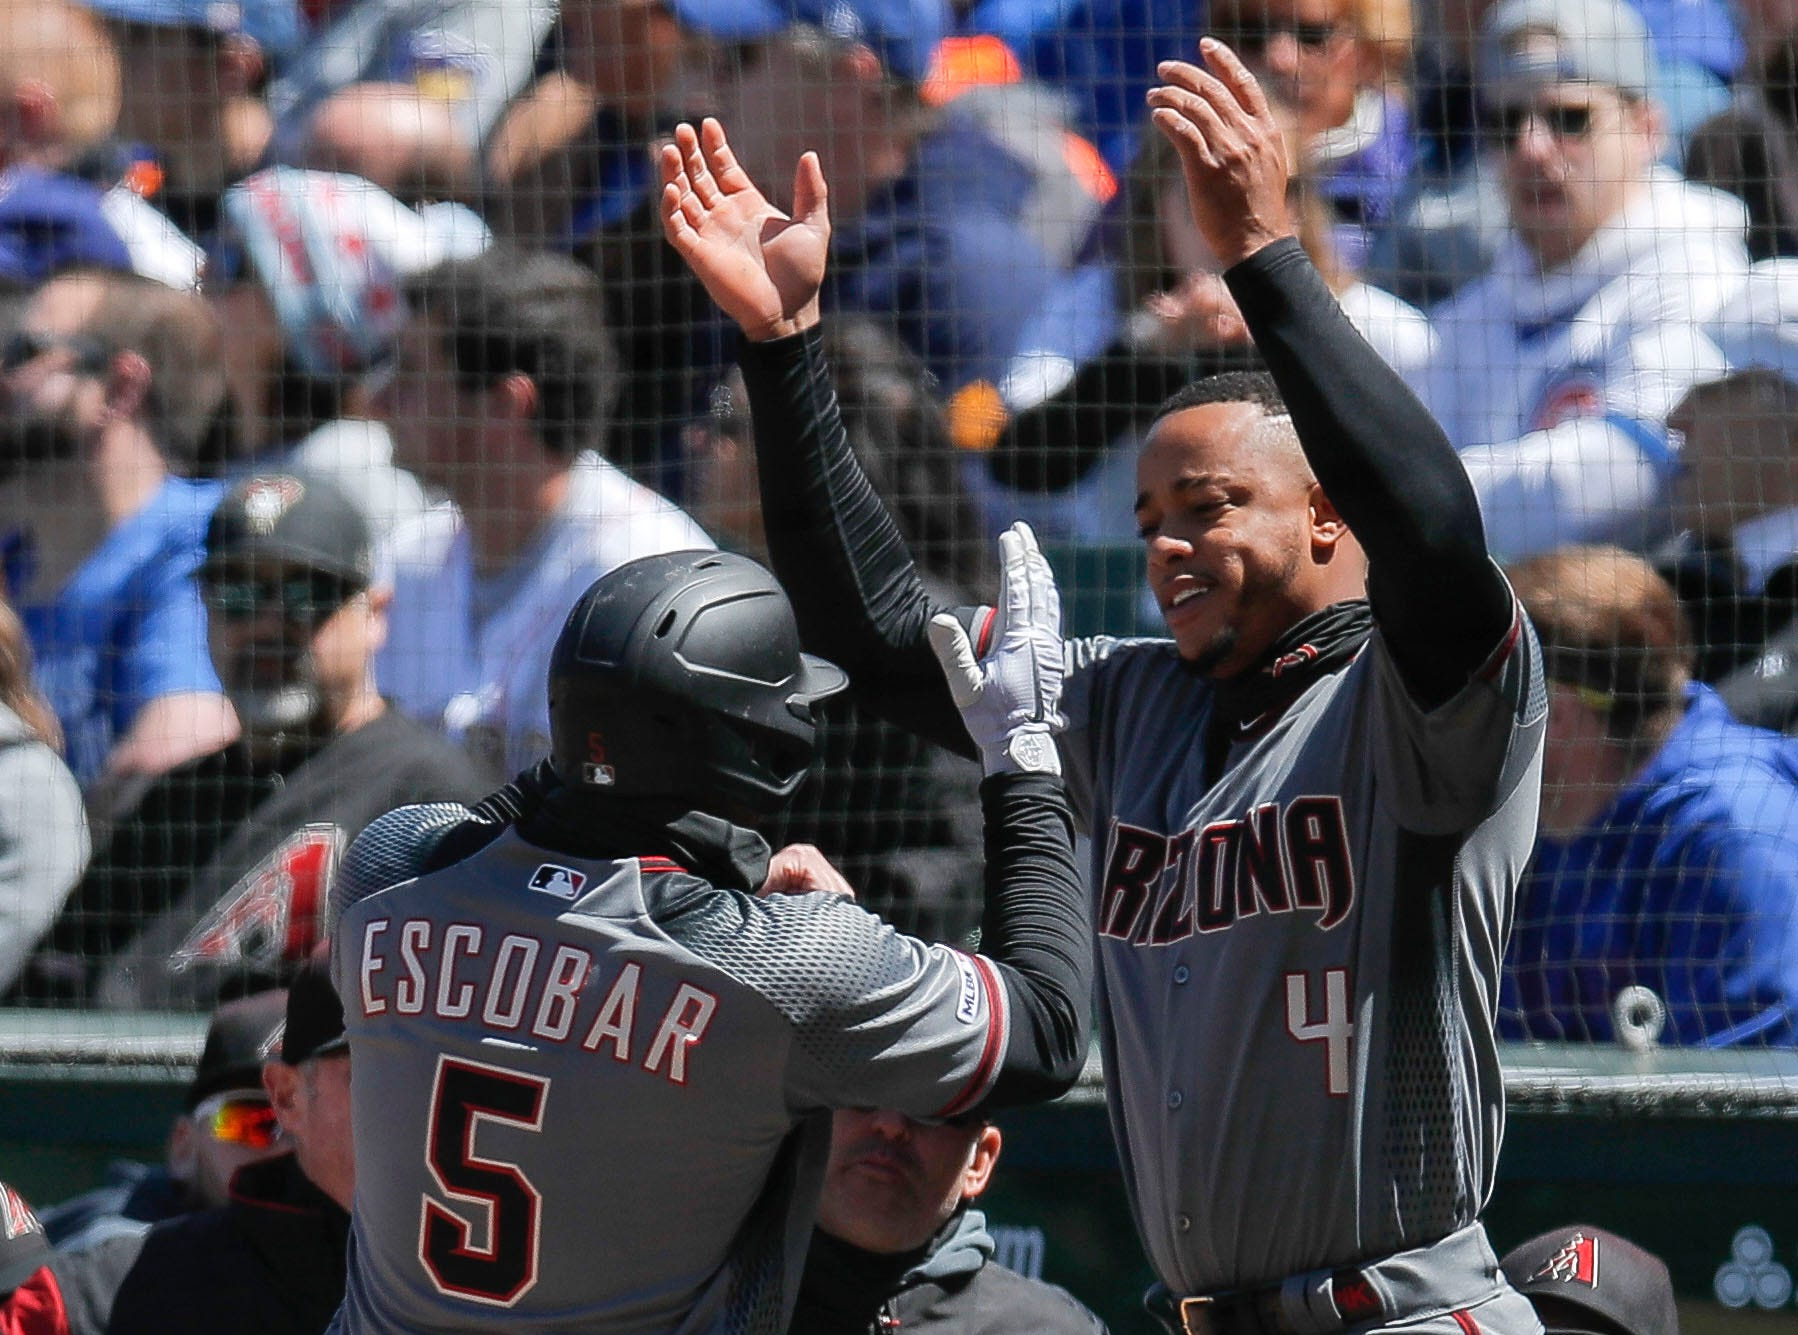 Eduardo Escobar celebrates a home run with Ketel Marte during the first inning of a game April 20 at Wrigley Field.